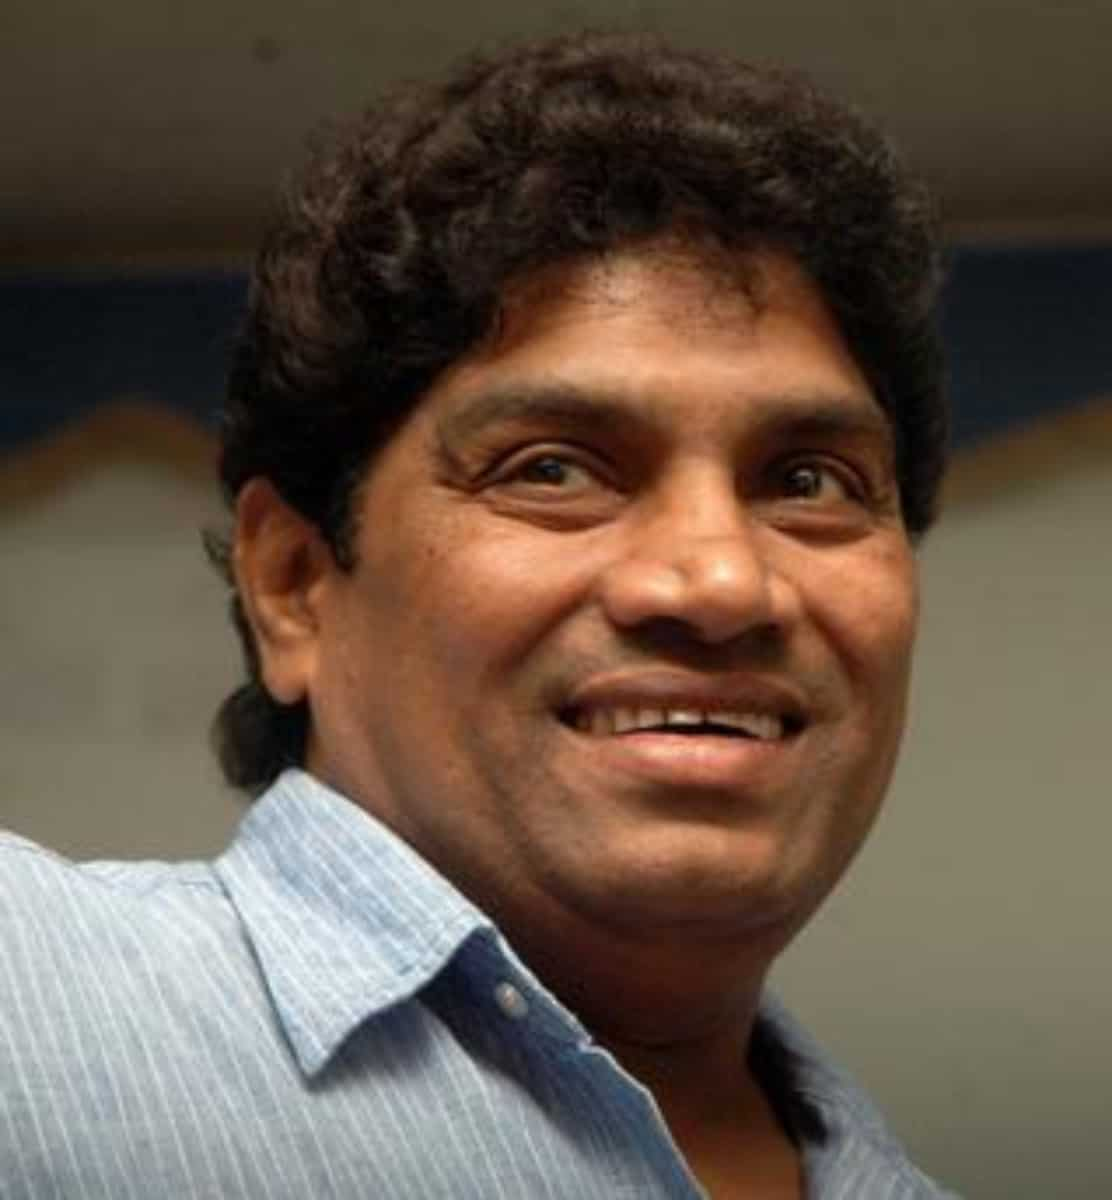 Took break from work to serve humanity and thank God: Johnny Lever